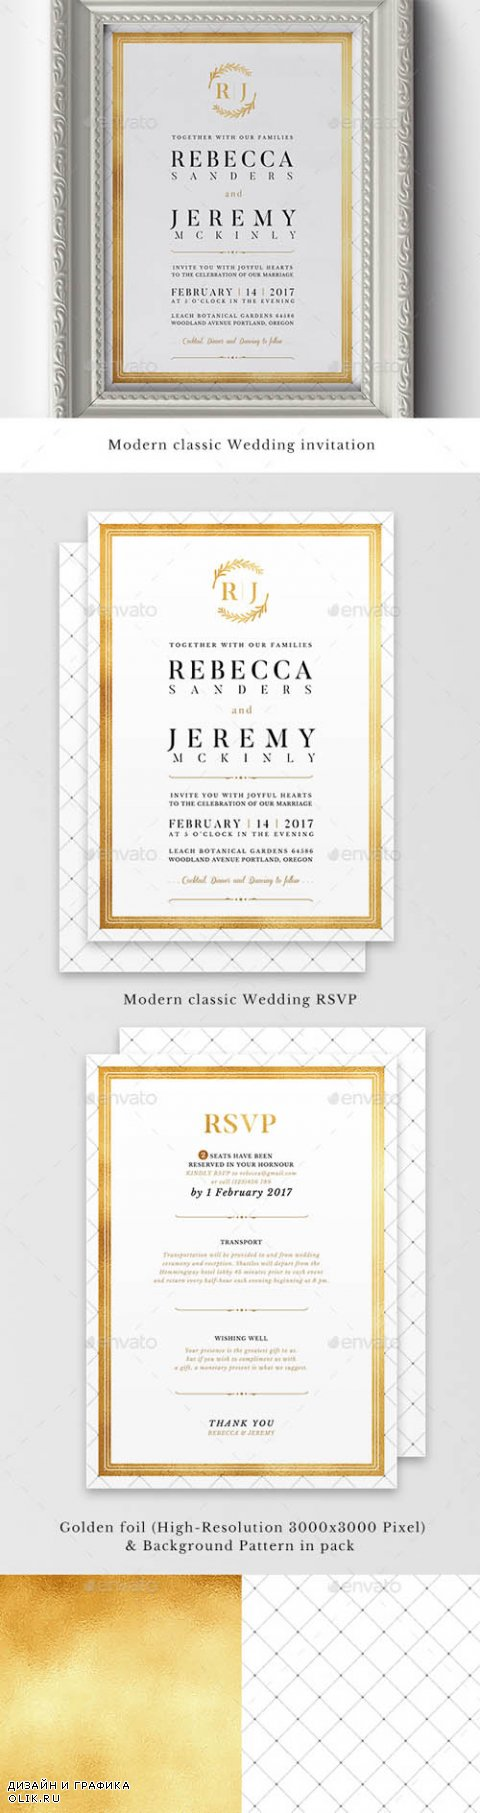 Modern Classic Wedding Invitations 17115774